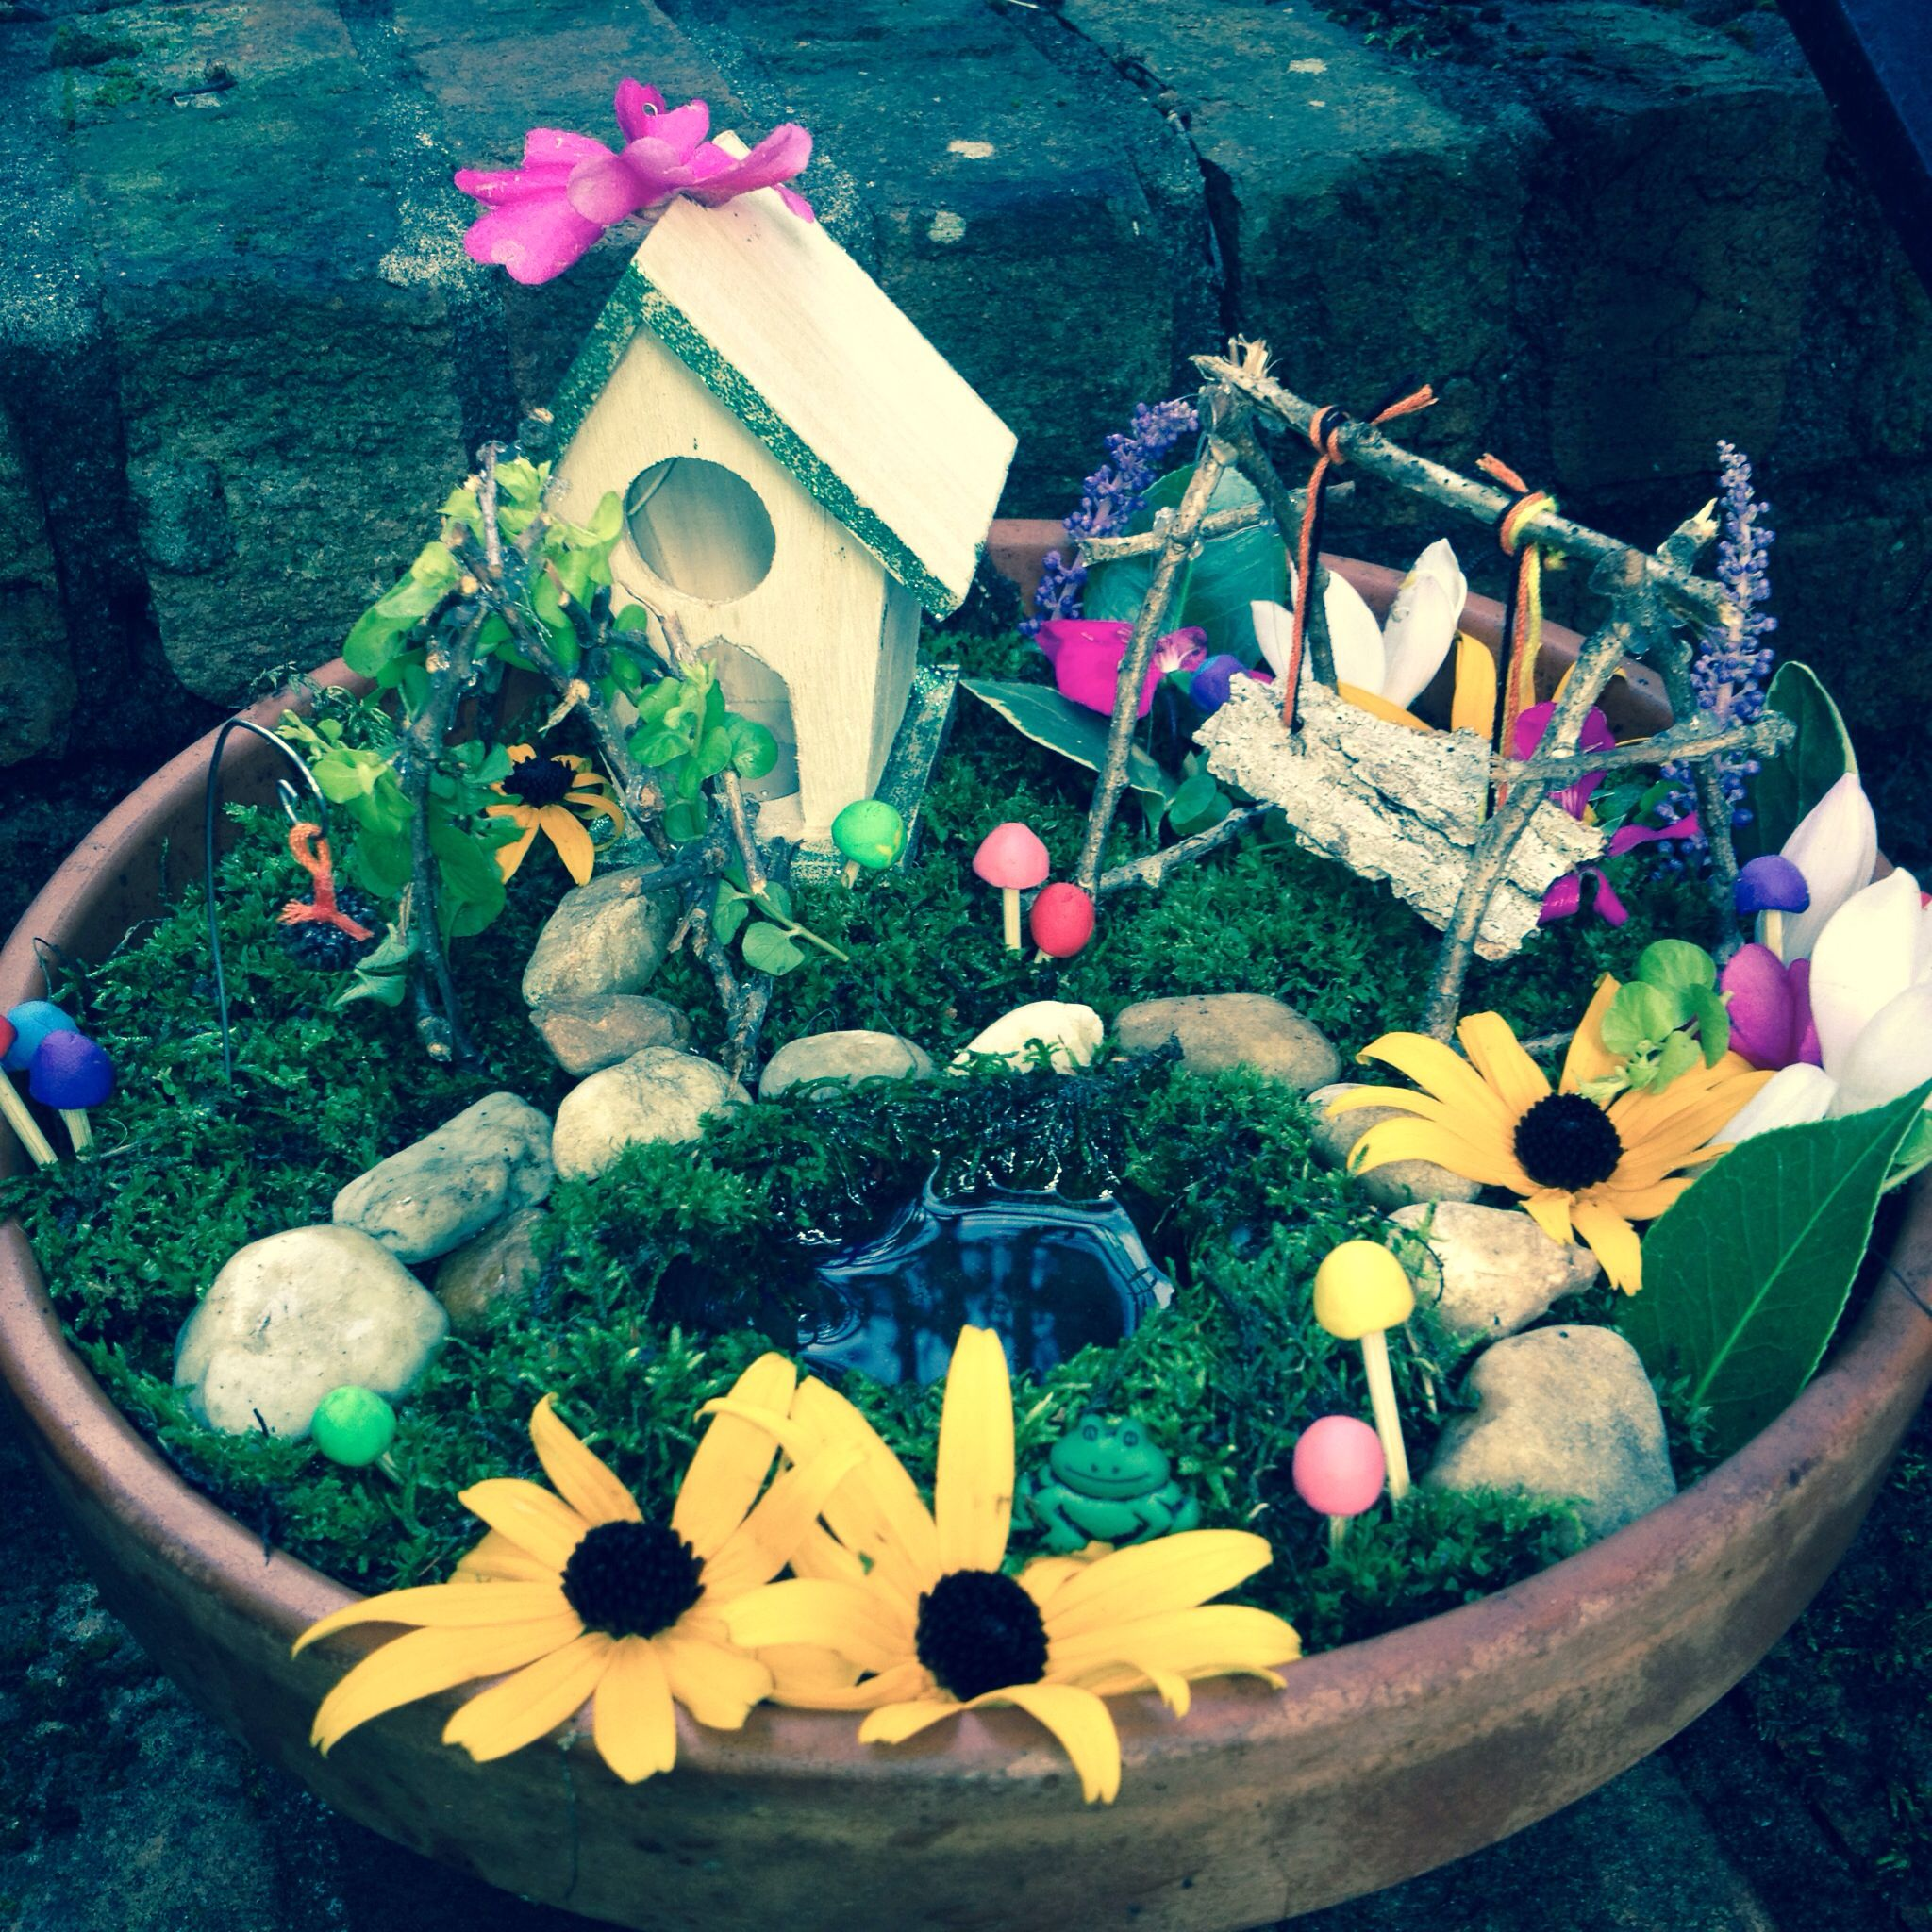 Awesome fairy garden by Kiyah! I just made this!!   -K